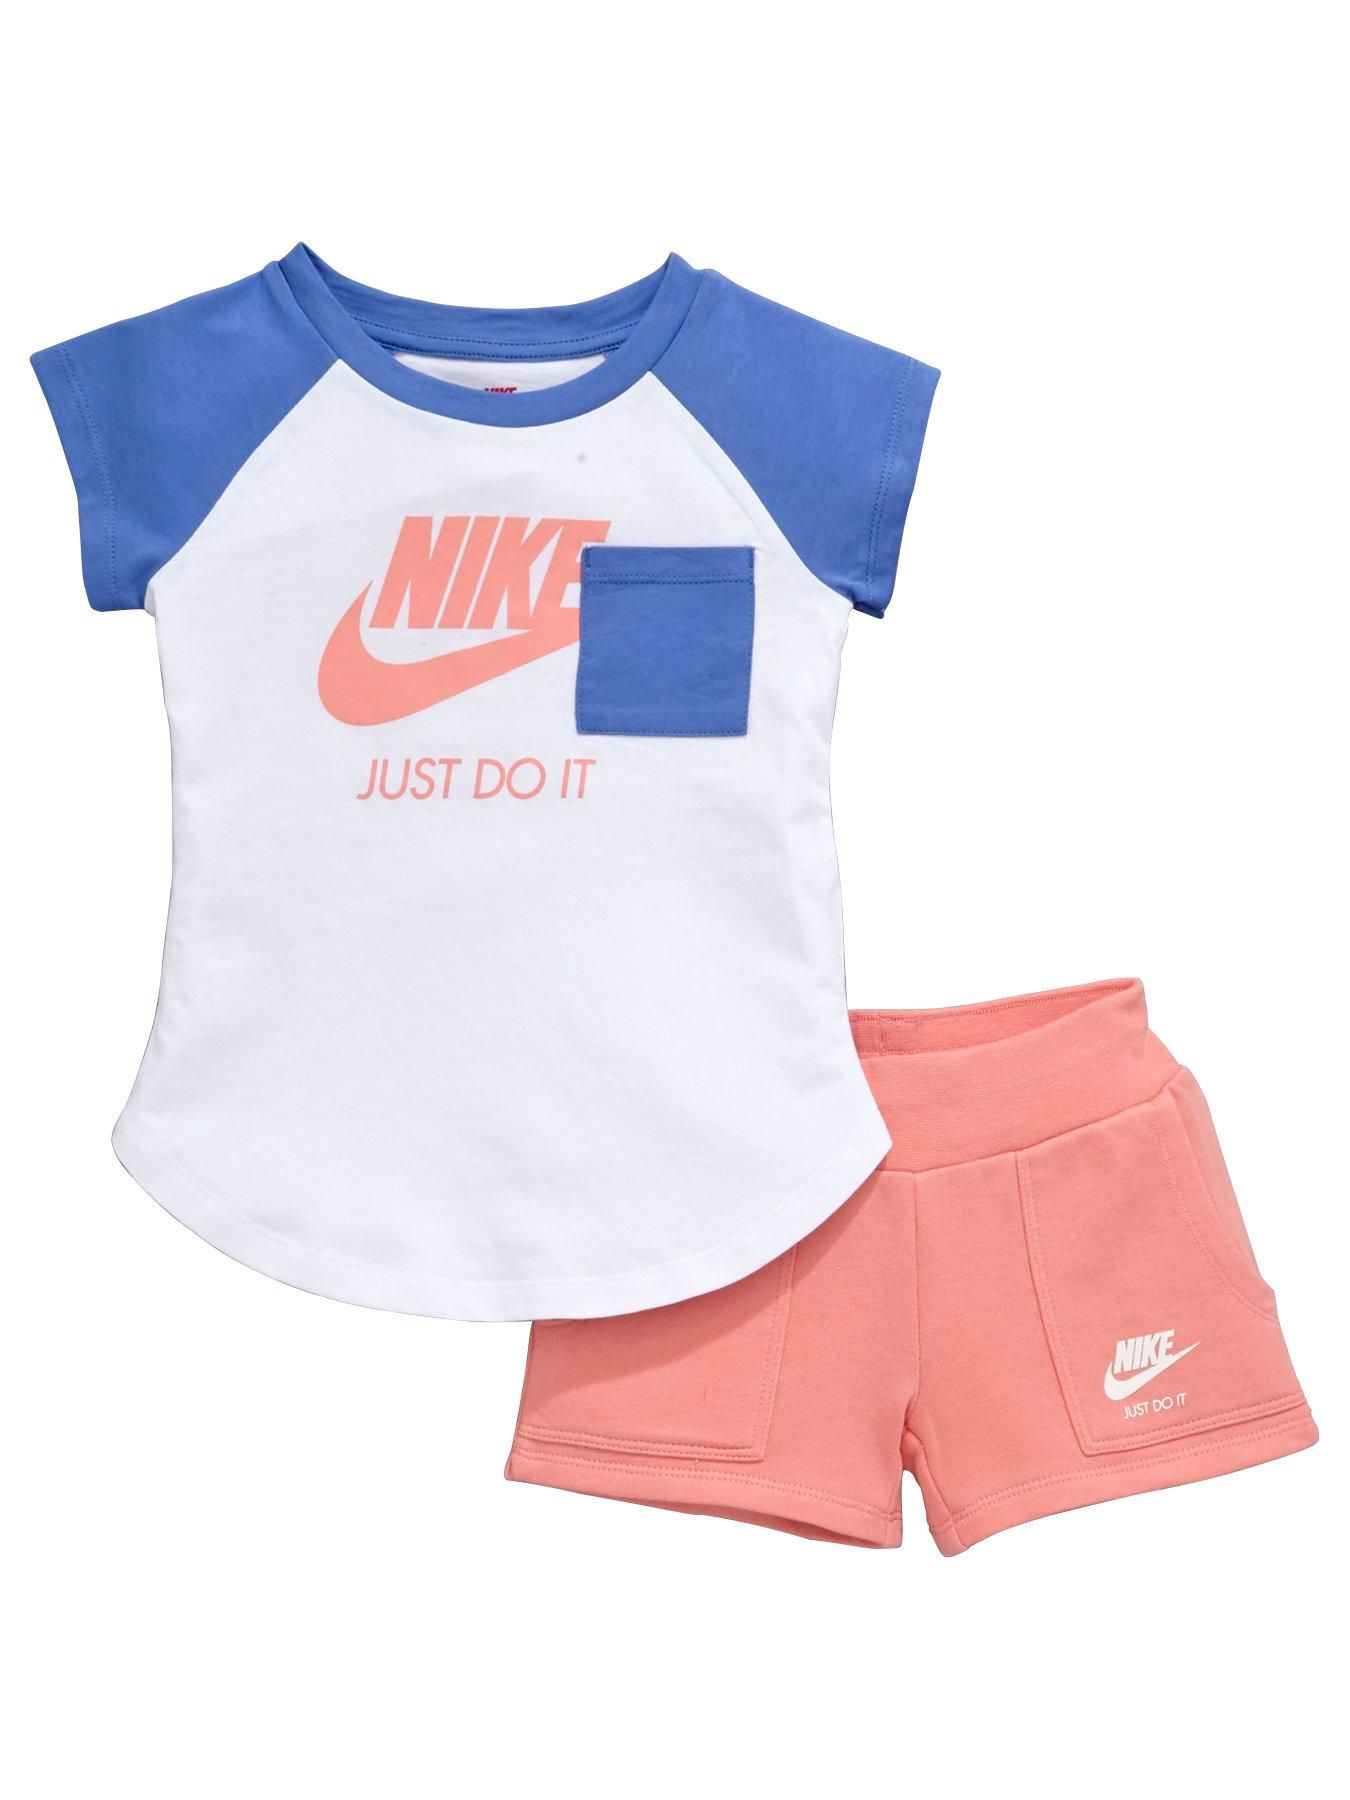 Nike Baby Girl Clothes Washing Instructions Machine Washable100% Cotton  Littlewood